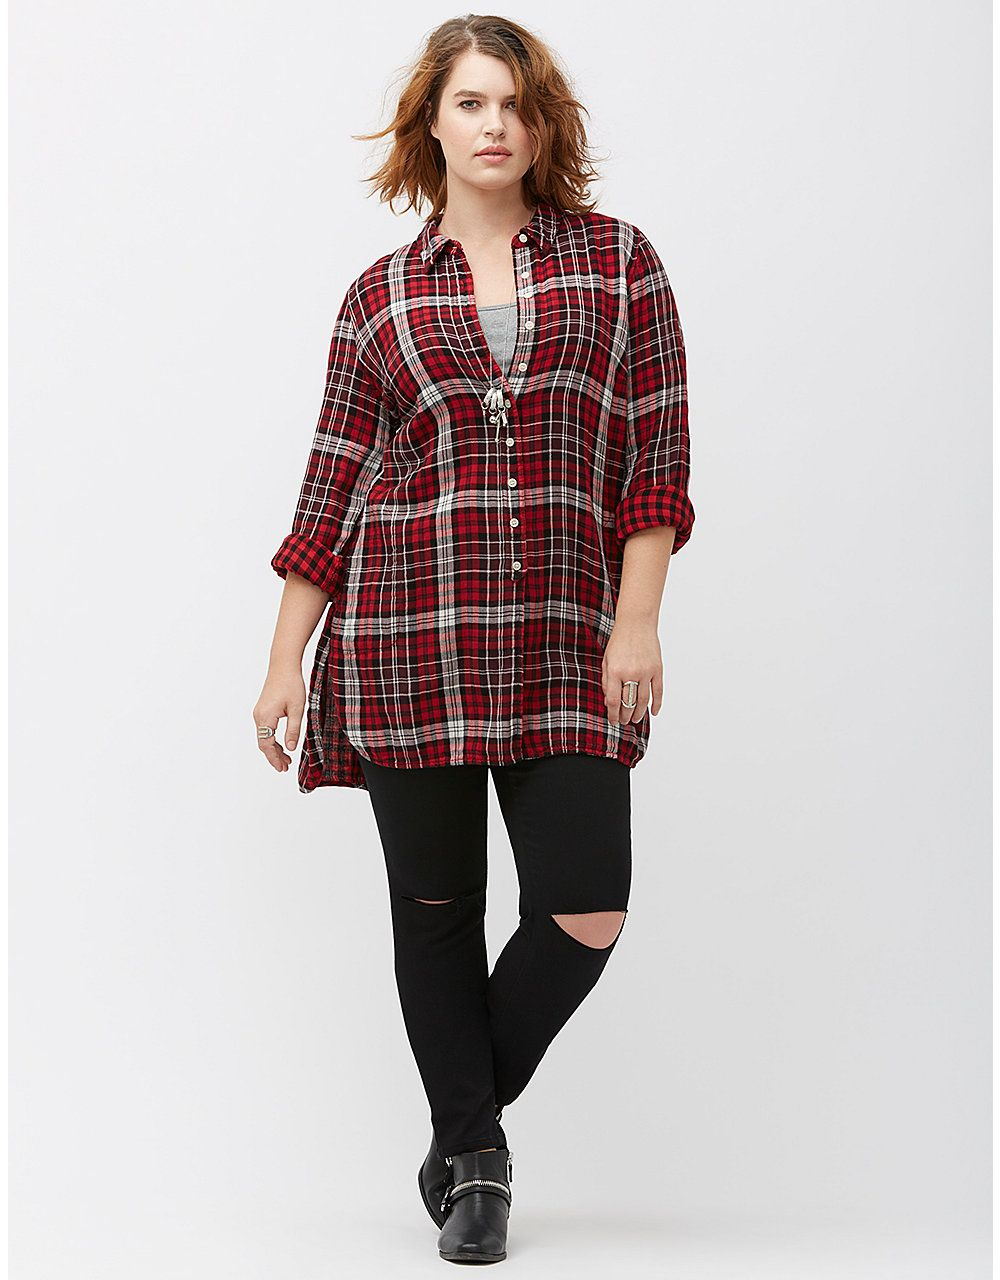 Plus Size Flannel Shirts For Fall Looks I Like Flannel